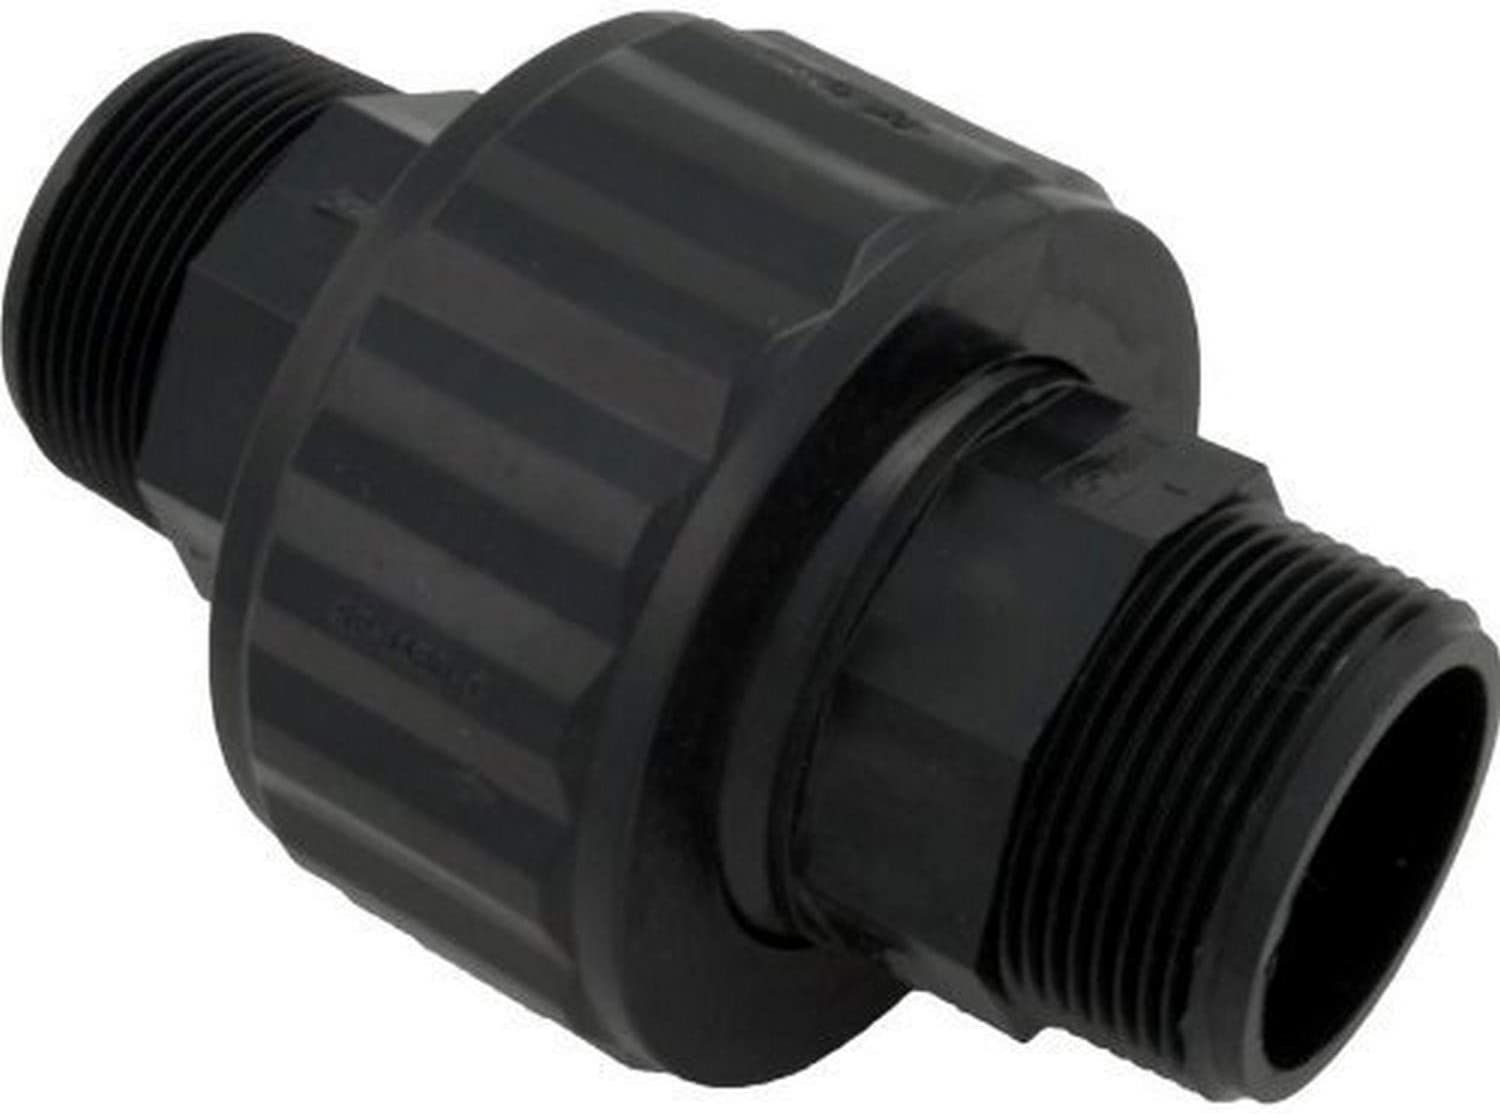 Hayward SP1480BLK 1-1/2-Inch MIP Black Self-Aligning Double Male End Union Replacement for select Hayward DE and Cartridge Filters